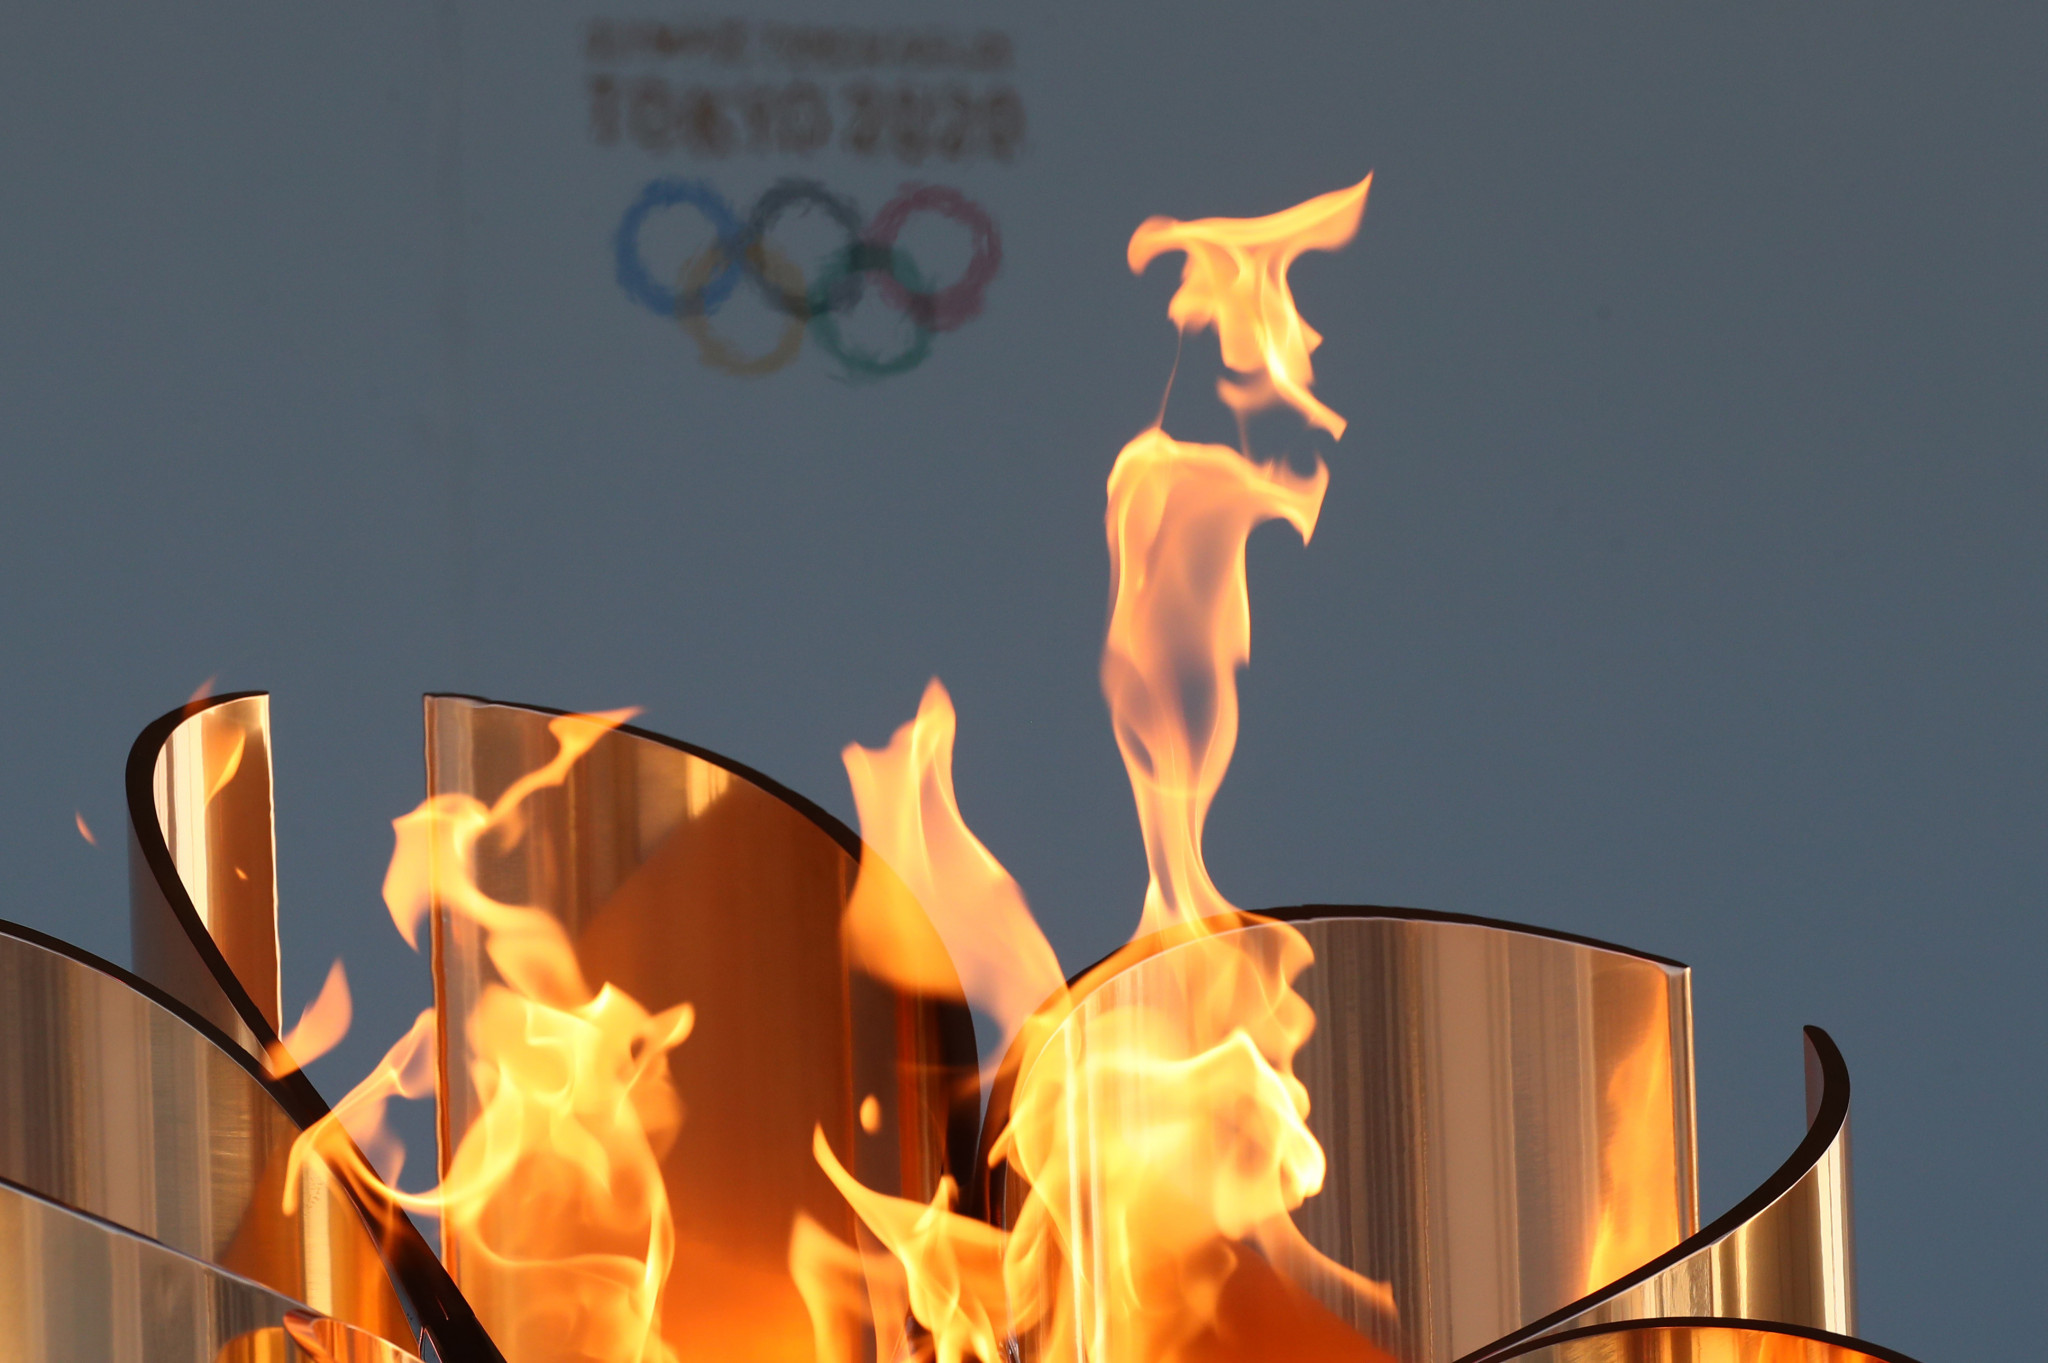 Japan has postponed the tour of the Tokyo 2020 Torches due to the COVID-19 pandemic ©Getty Images